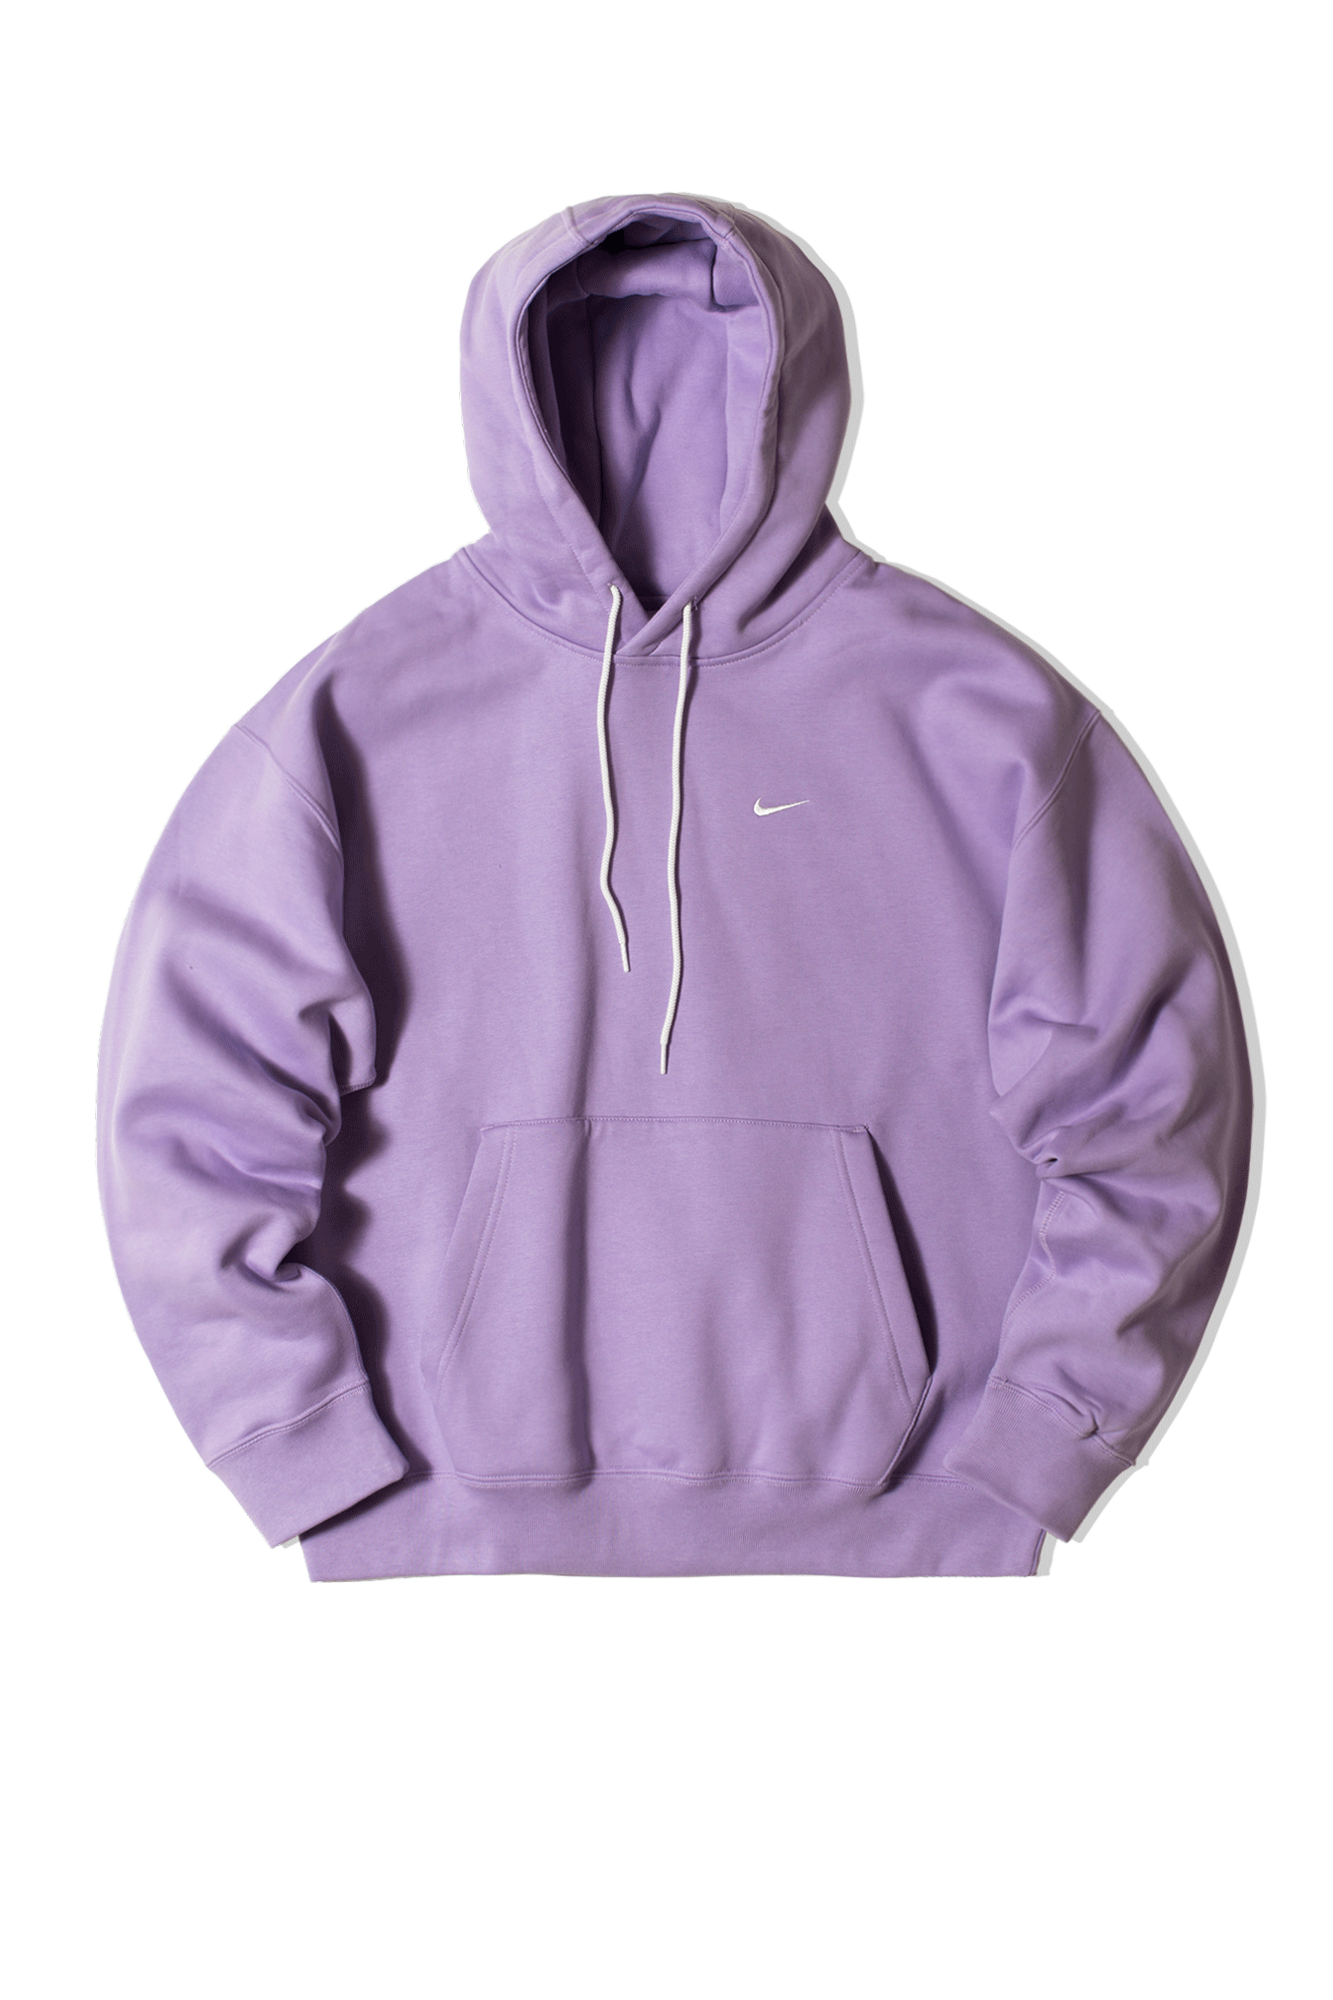 Nike Hooded sweatshirts M NRG SoloSwoosh Fleece Hooded Sweatshirt Purple CV0552-#000#563#S - One Block Down